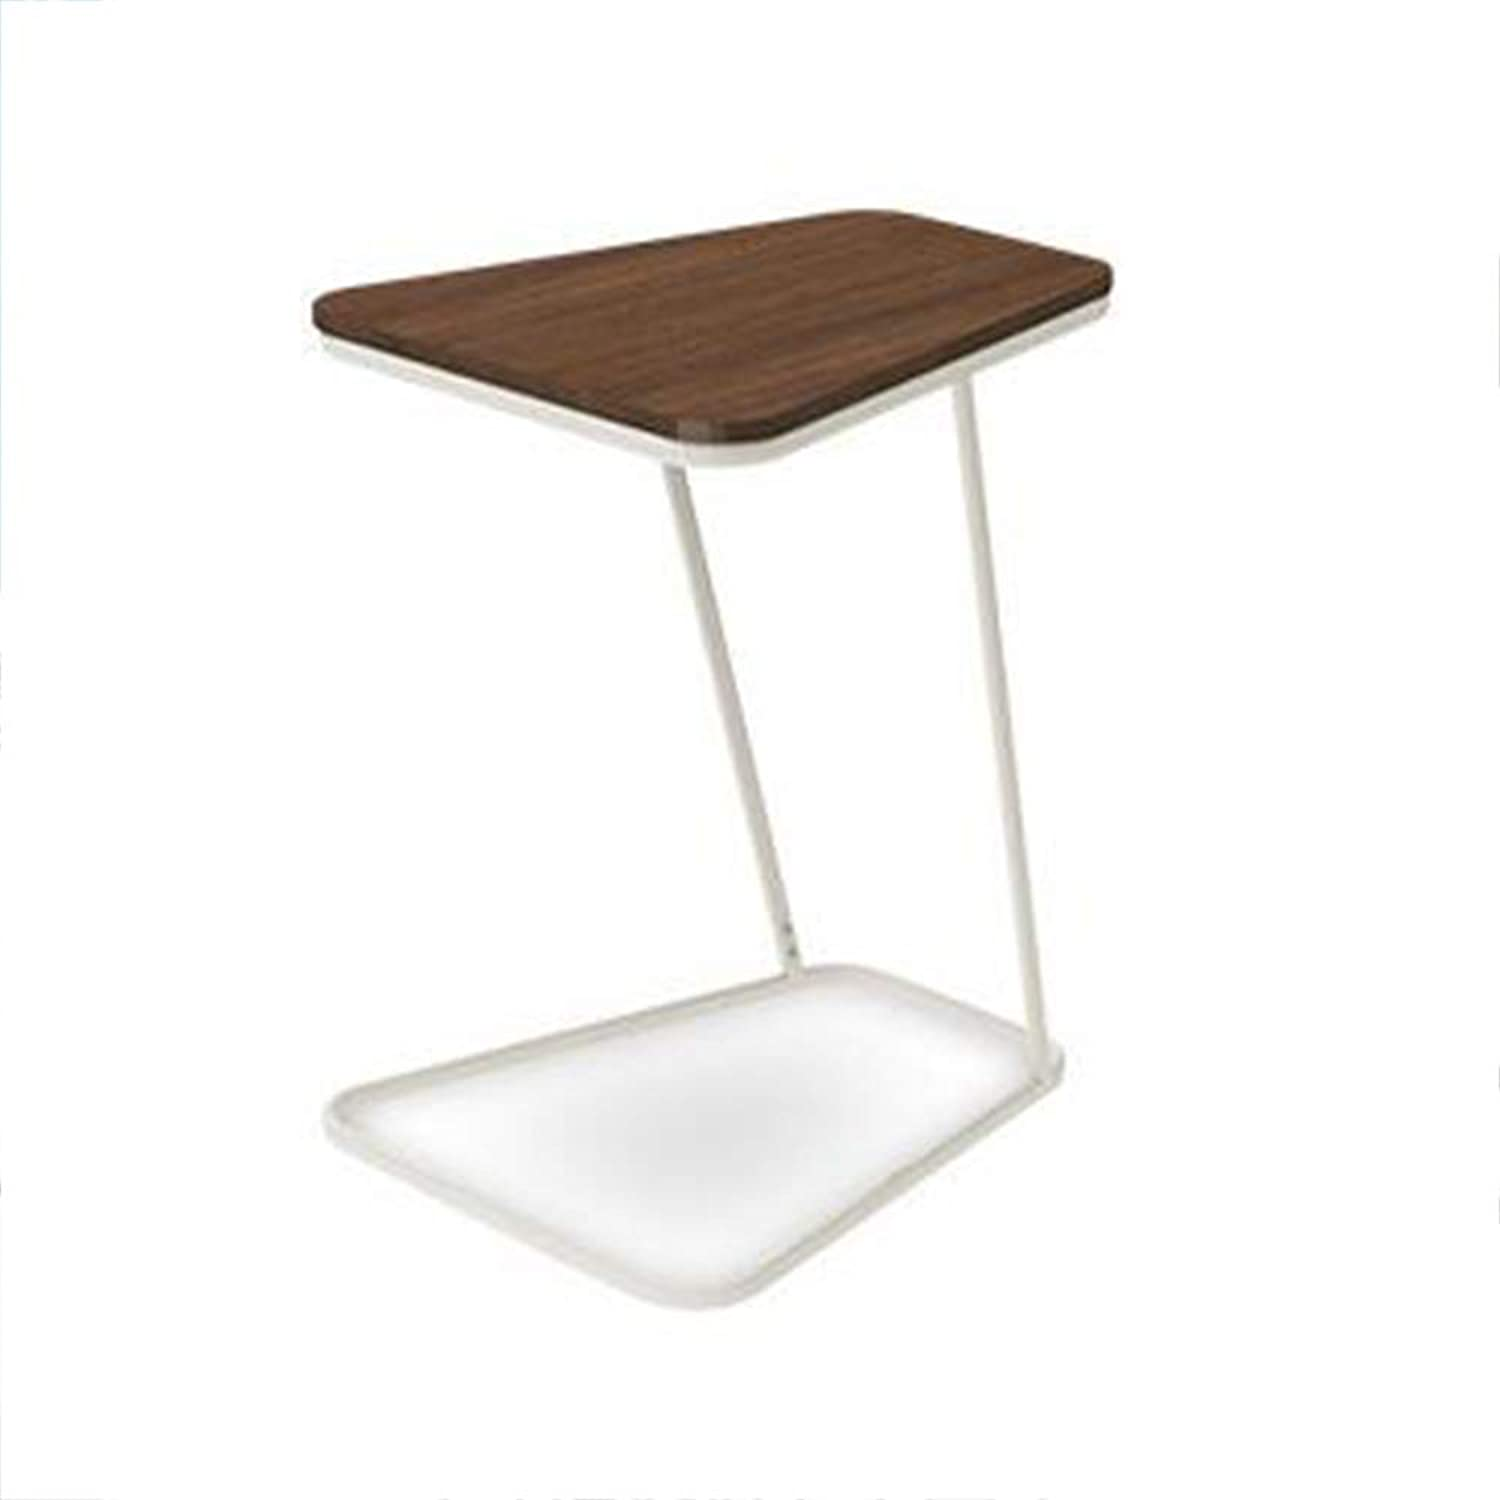 ZR-Wall Table It Can Move Laptop Table - Coffee Table - Bedside Table Sofa Snack Table -Save Space